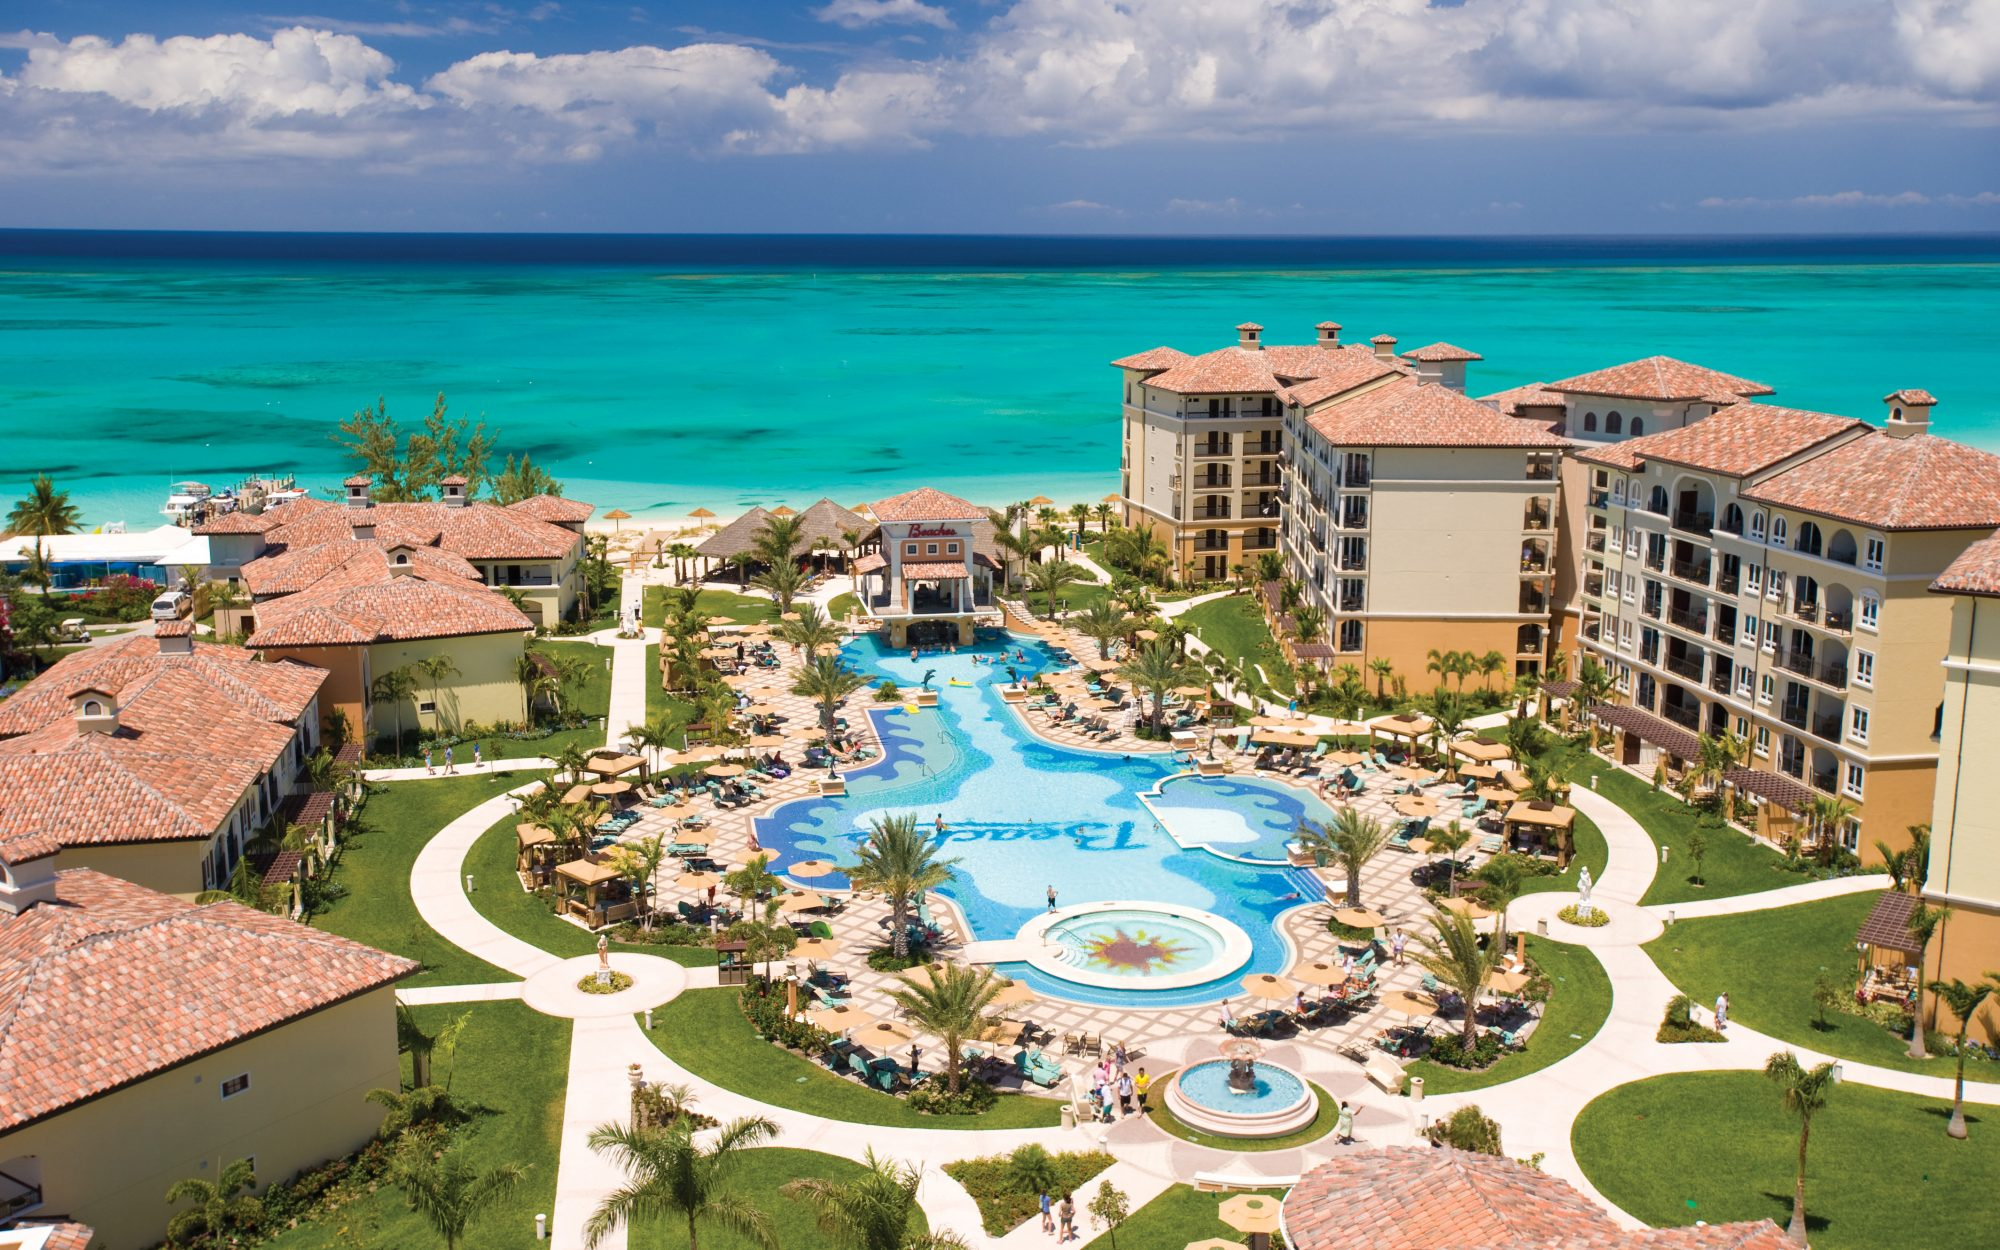 Best Caribbean Resorts: Beaches Turks & Caicos Resort Villages & Spa, Turks and Caicos